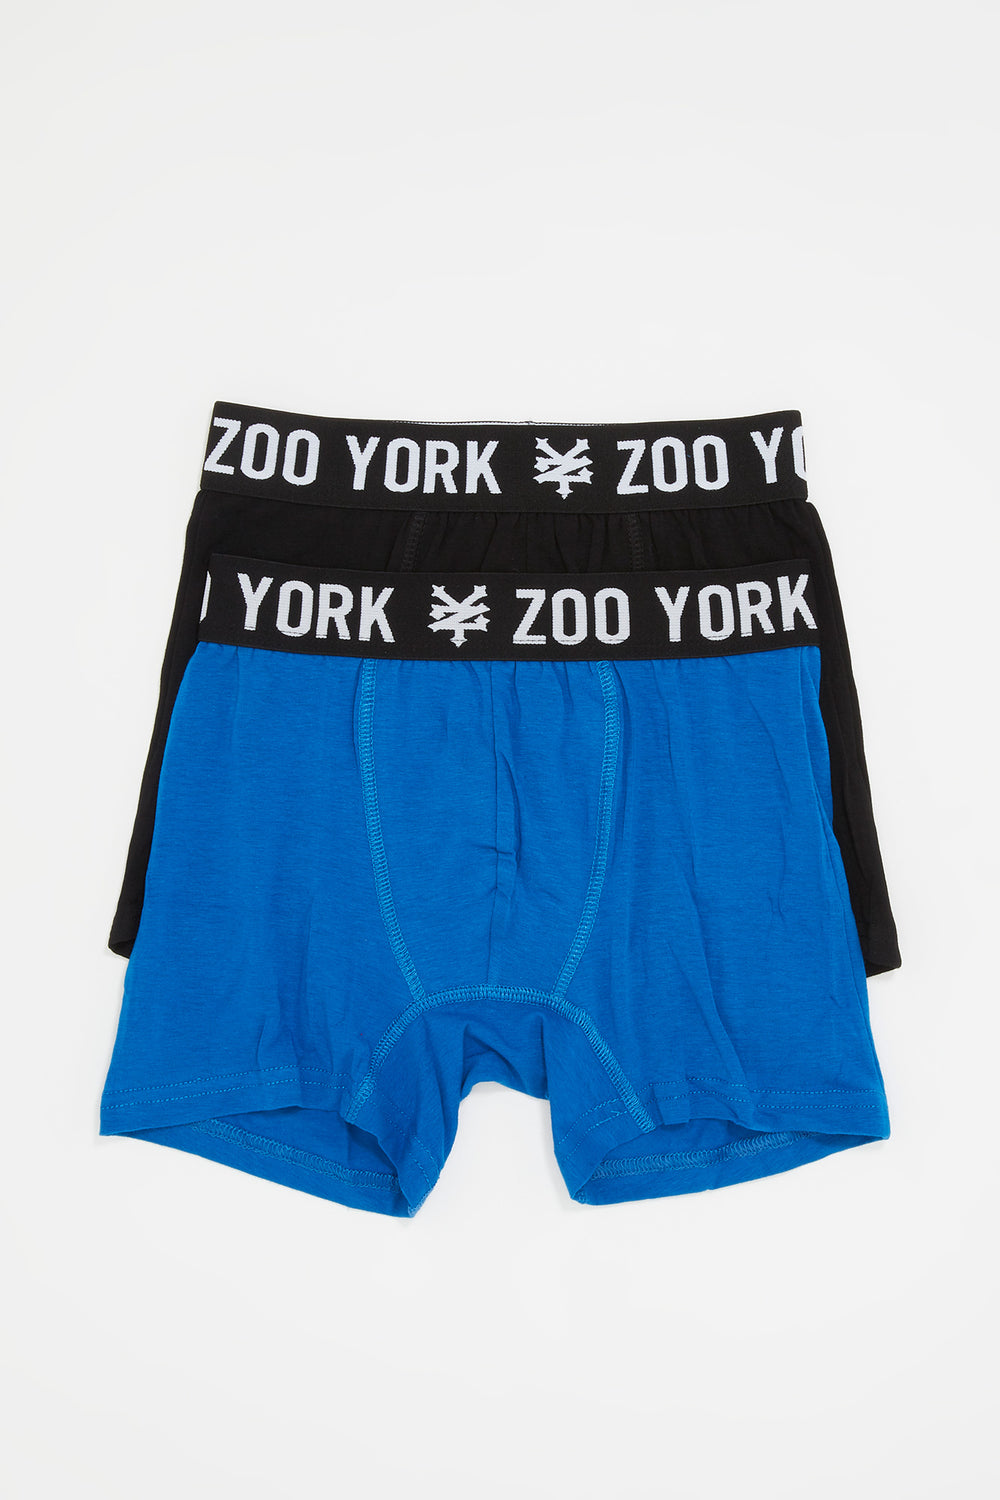 Zoo York Mens 2-Pack Cotton Boxer Briefs Blue